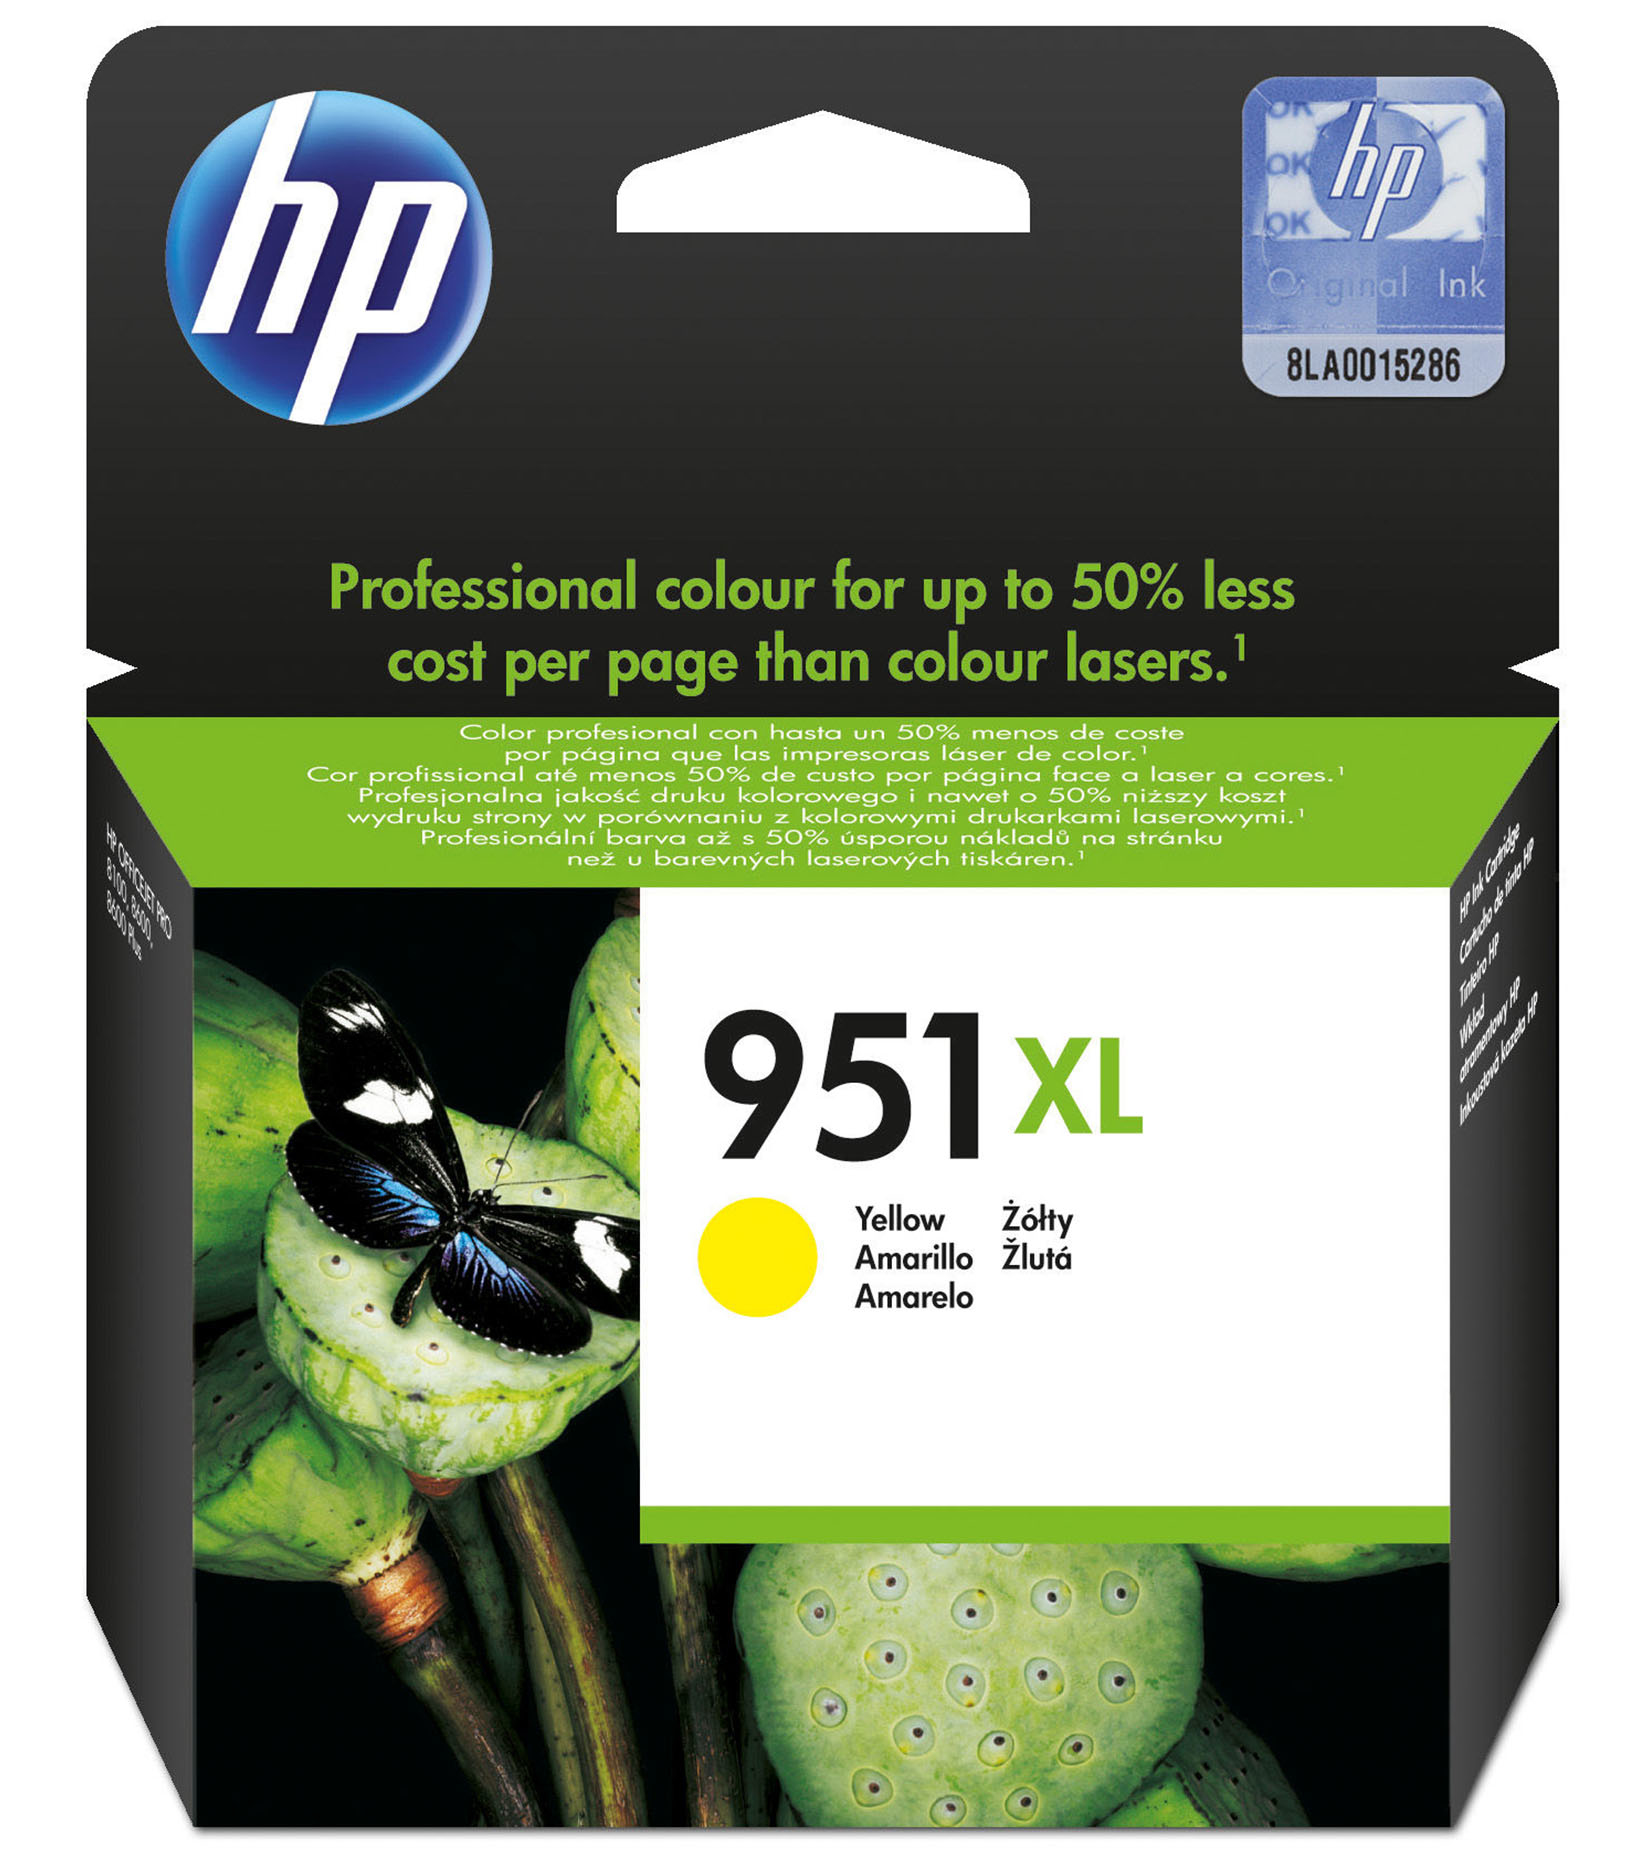 CN048AE#BGY Hp HP 951XL - High Capacity - Yellow - Original - Ink Cartridge - For Officejet Pro 251dw, 276dw, 8100, 8600, 8600 N911a, 8610, 8620, 8630 - C2000